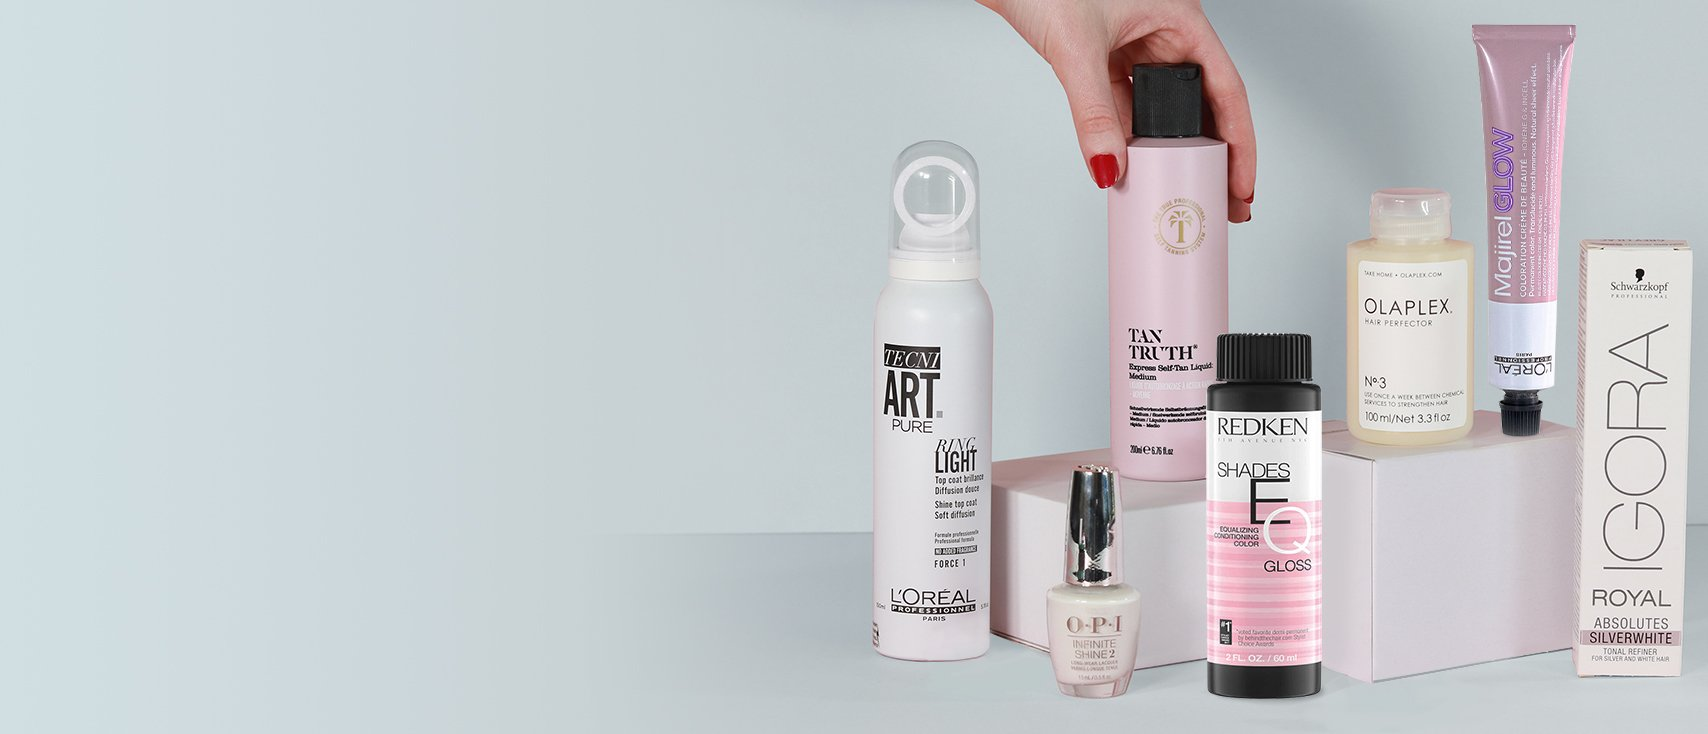 Order and pick up your Hair & Beauty essentials within three hours! It's time to Click & Collect!